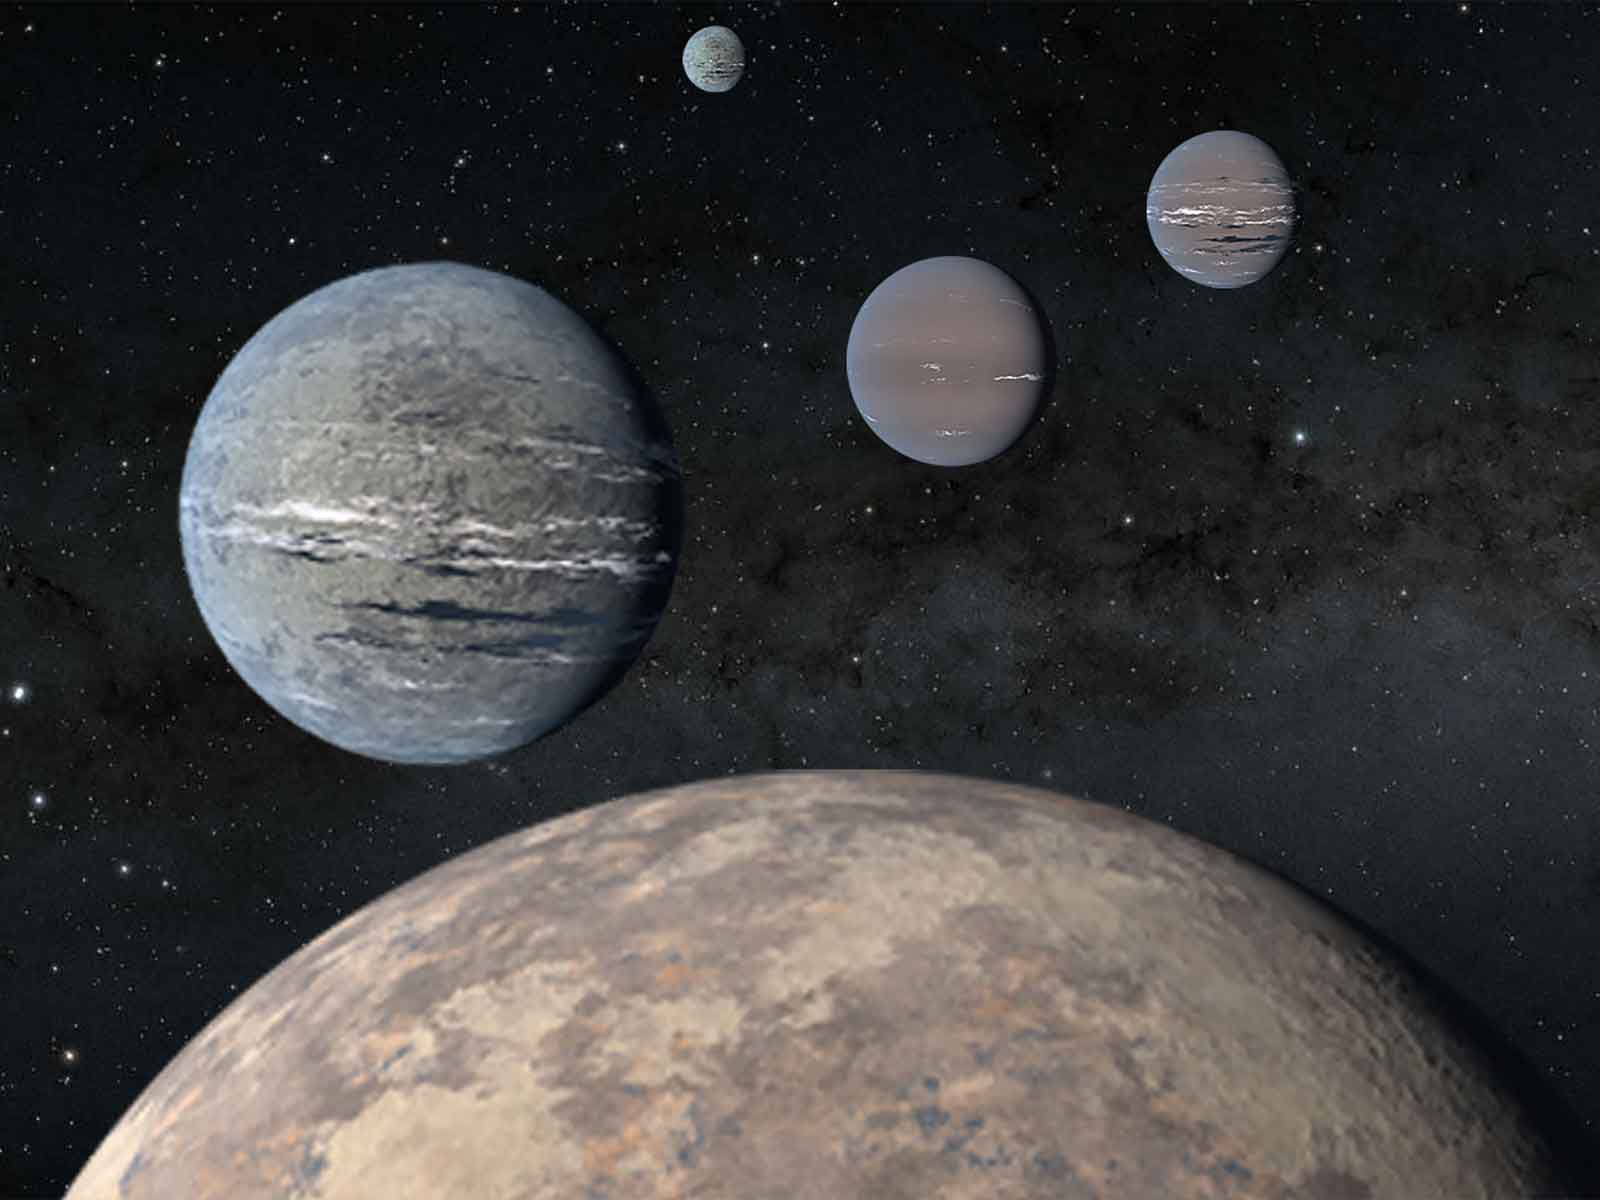 Balancing Homework and A.P. Classes, These High Schoolers Discovered Four Exoplanets